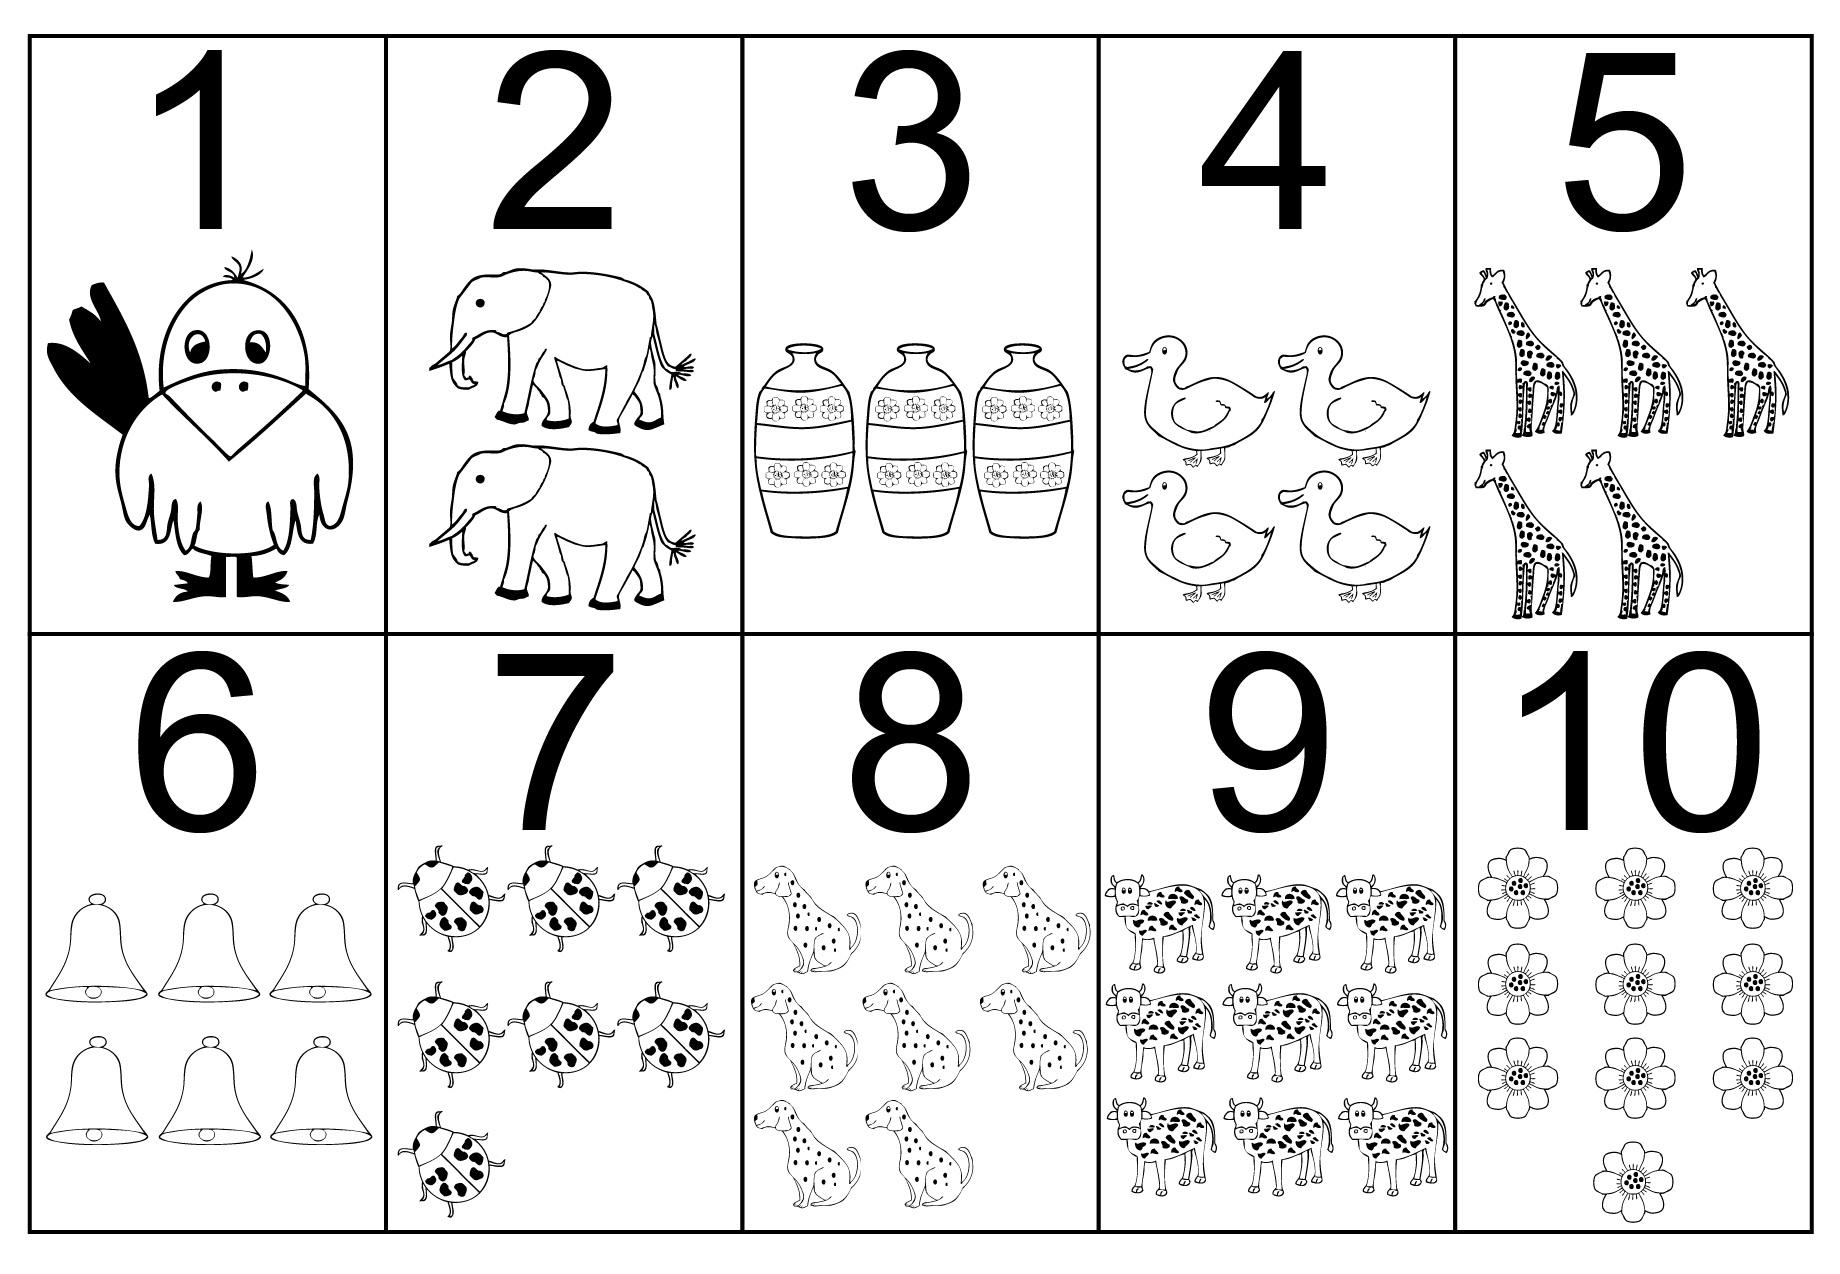 graphic regarding Printable Number Coloring Pages named No cost Printable Variety Coloring Web pages For Small children